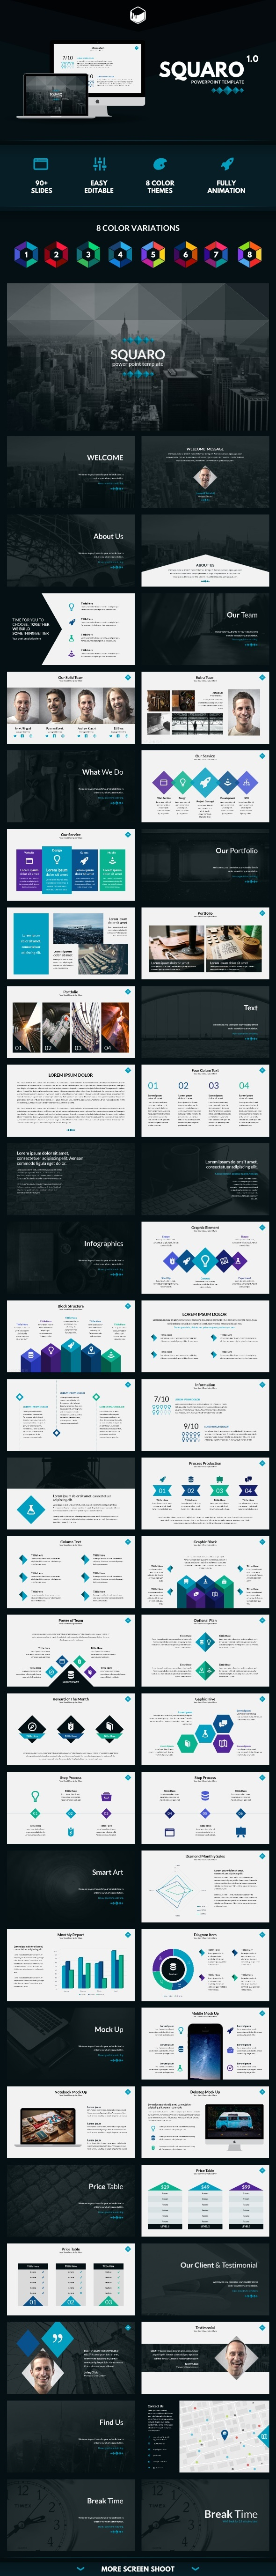 GraphicRiver Squaro PowerPoint Template 11408642